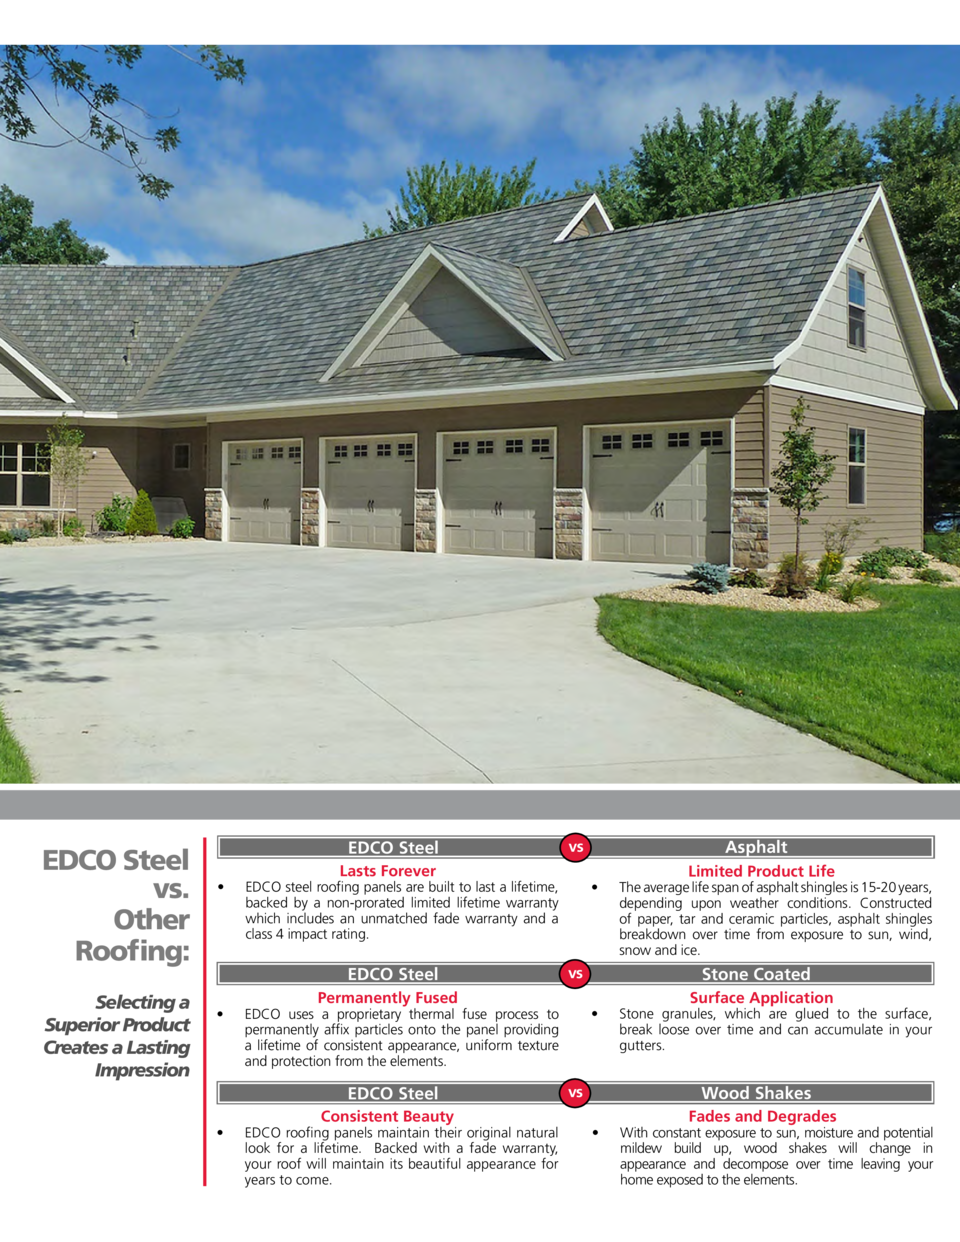 EDCO Steel vs. Other Roofing  Selecting a Superior Product Creates a Lasting Impression  EDCO Steel       Lasts Forever  E...